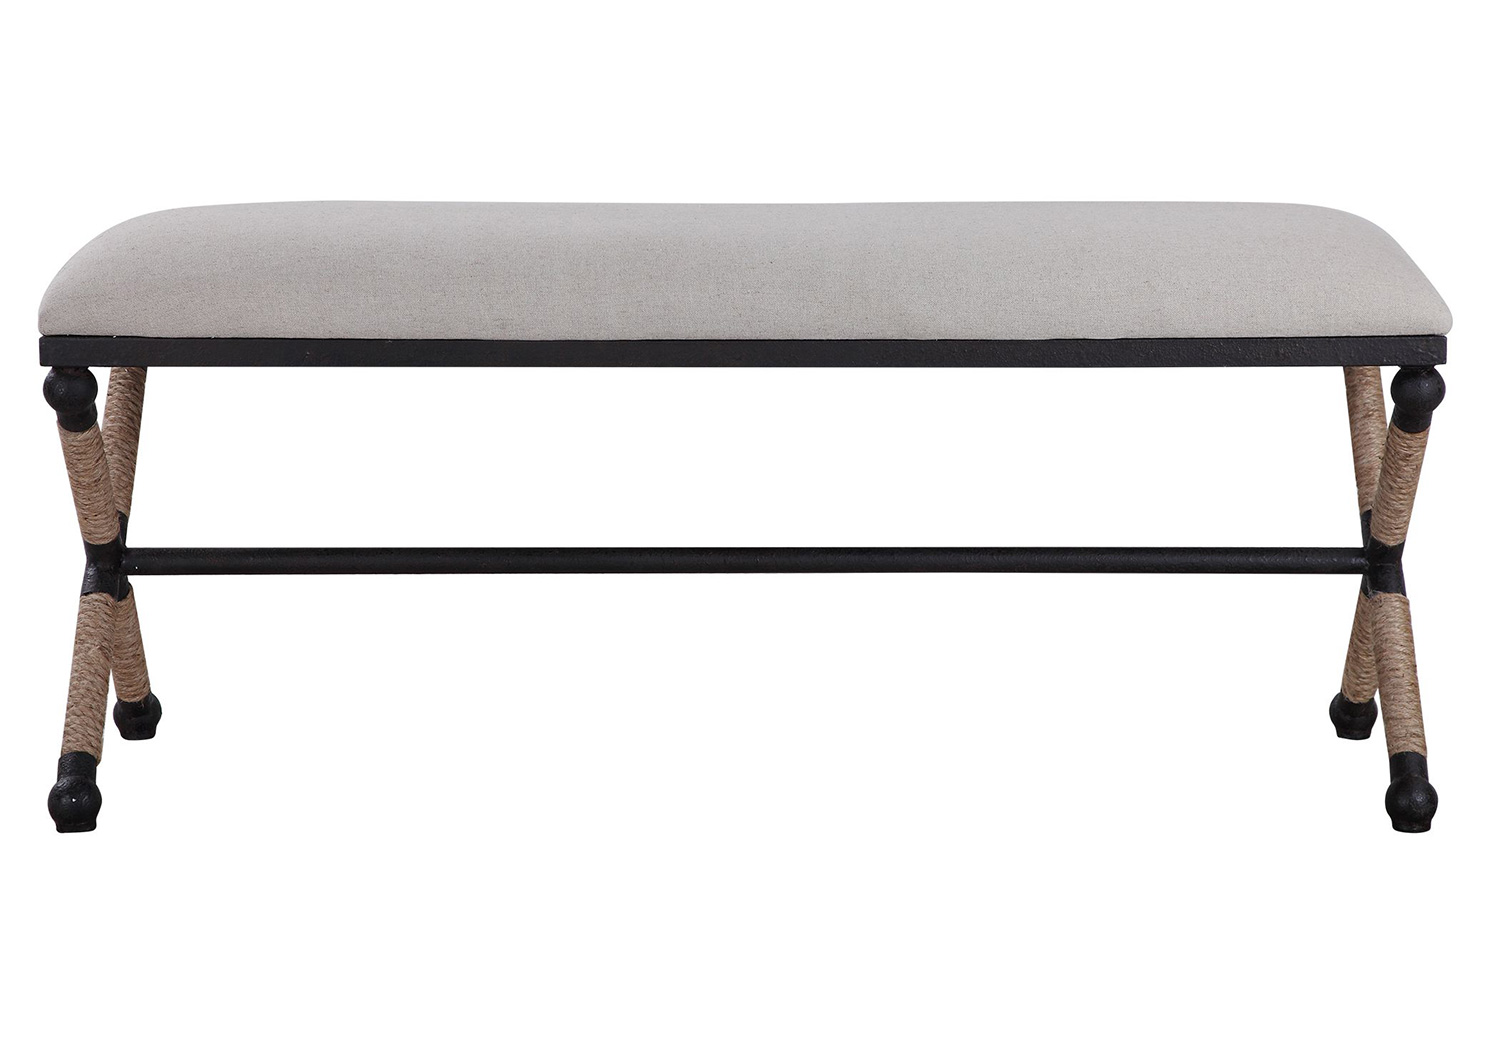 Uttermost Firth Bench - Oatmeal